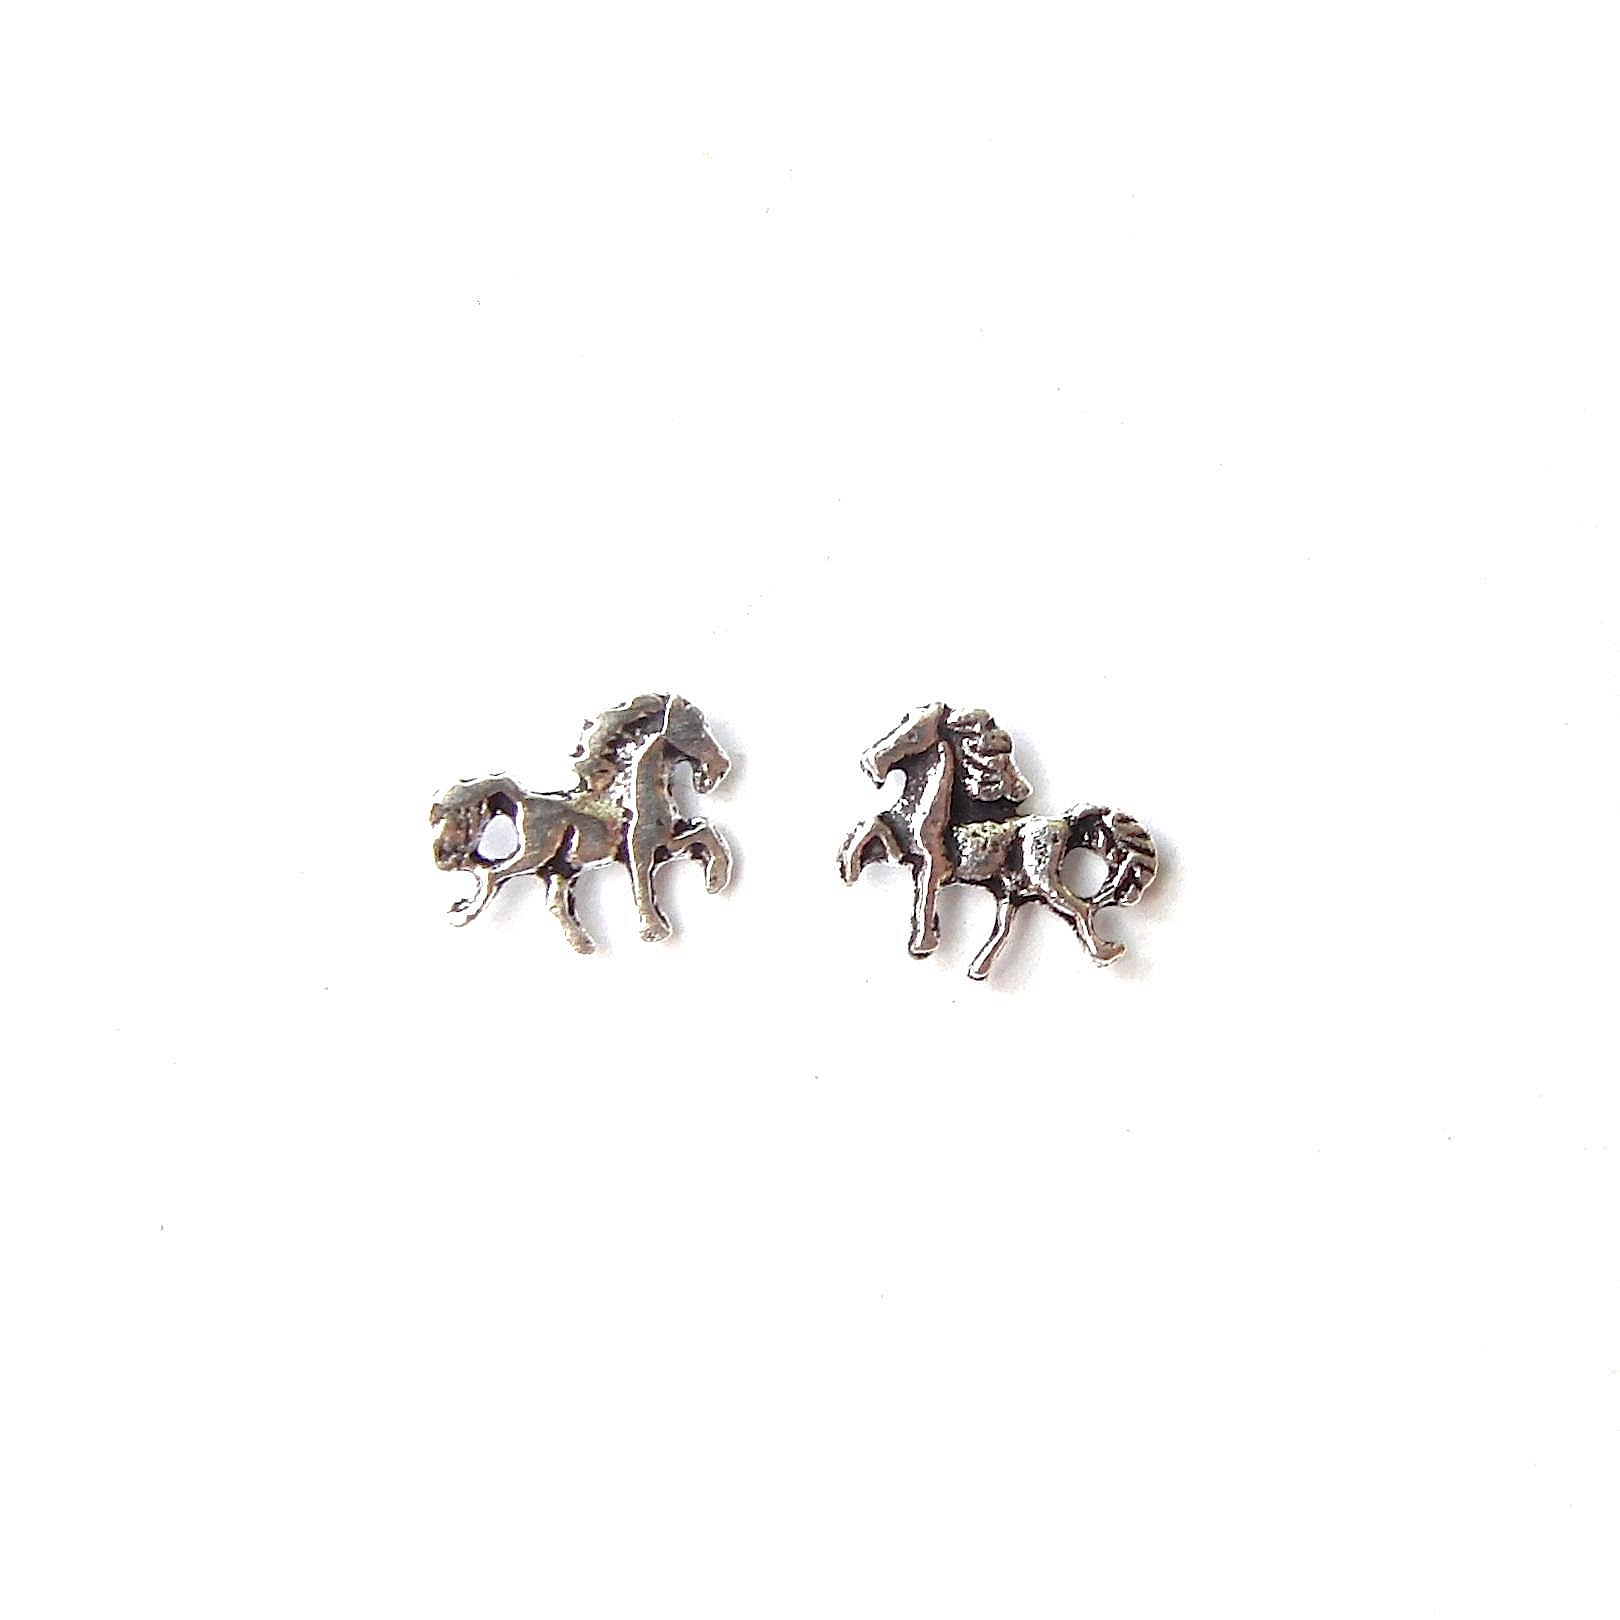 Beautiful Silver Horse Studs